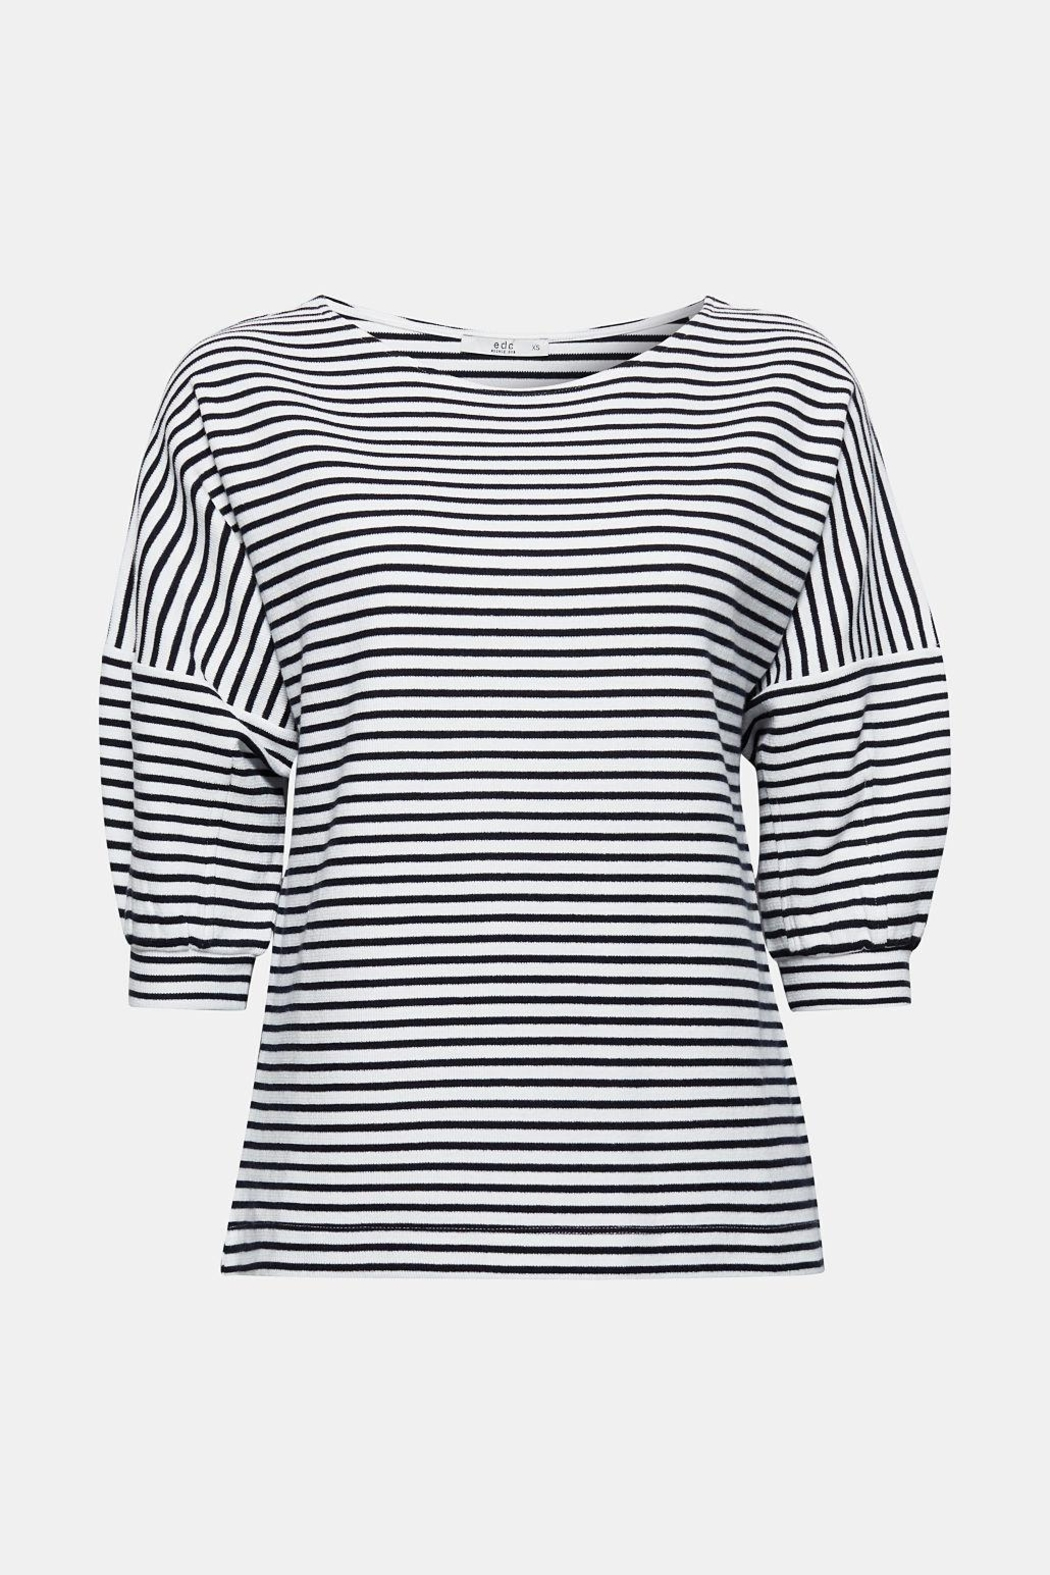 Esprit Striped Top - Main Image